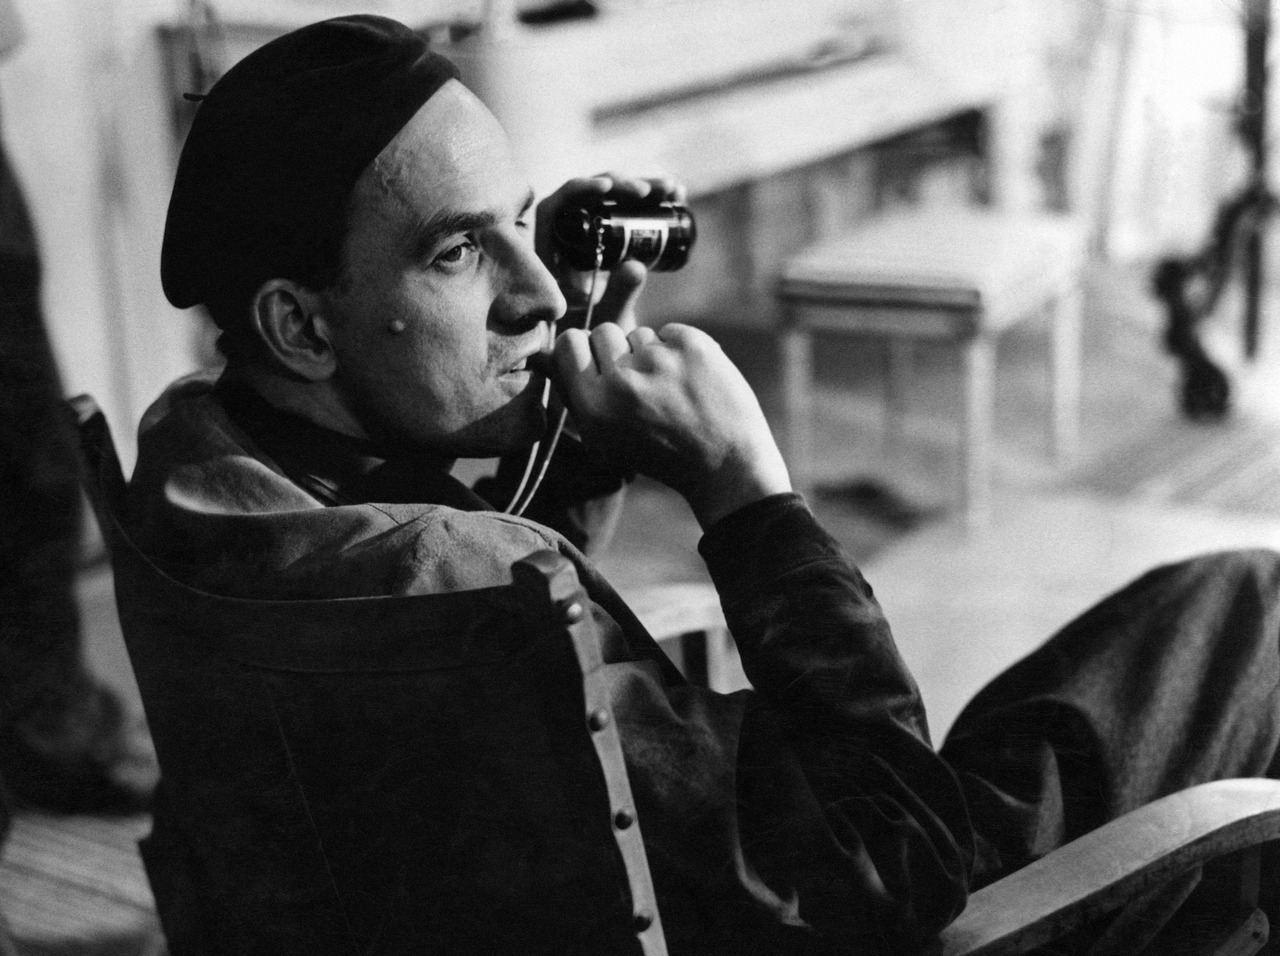 Ingmar Bergman's early films.